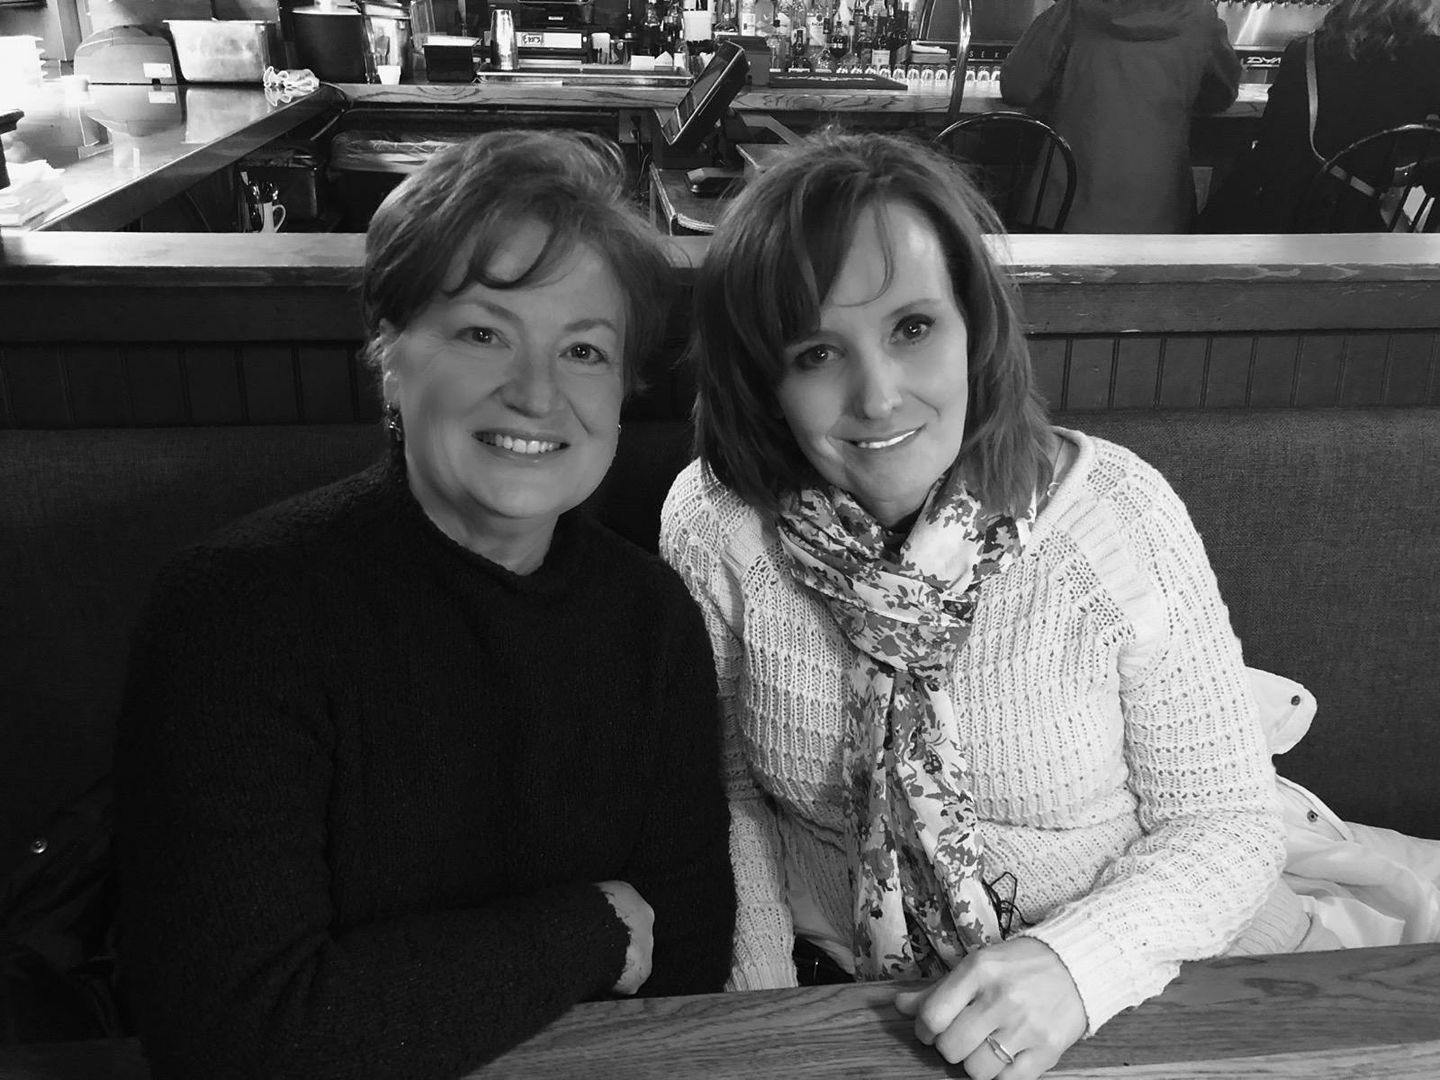 Lisa Shields and Nancy Reorda, the moms of two of our editors, pose on vacation.